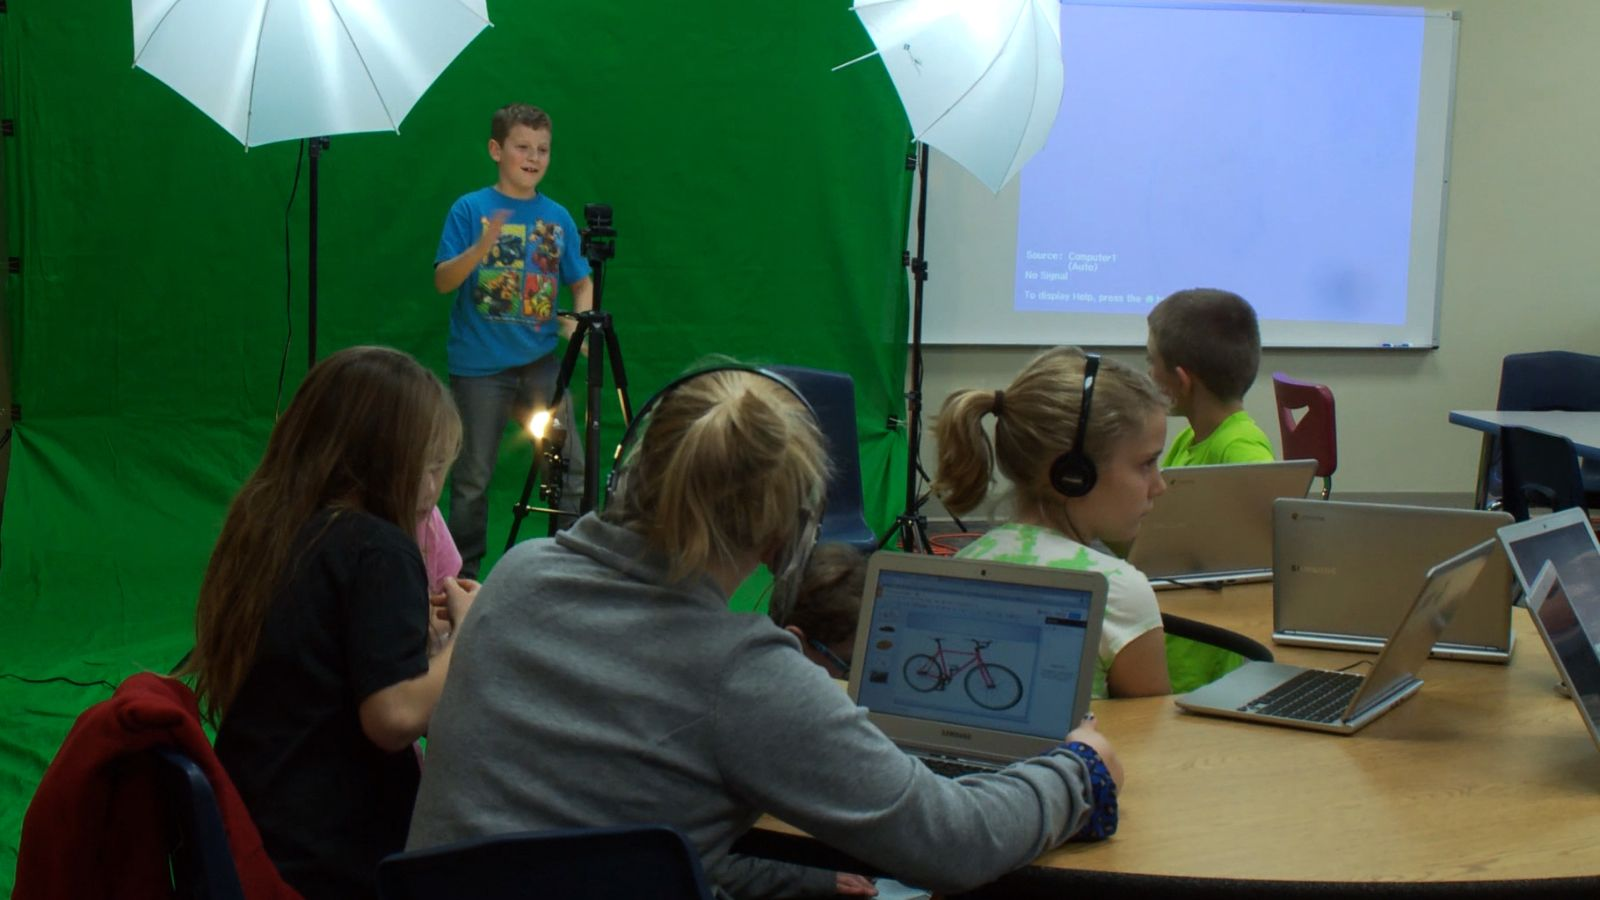 Students are working in a Multimedia class. A student is on a green screen background.